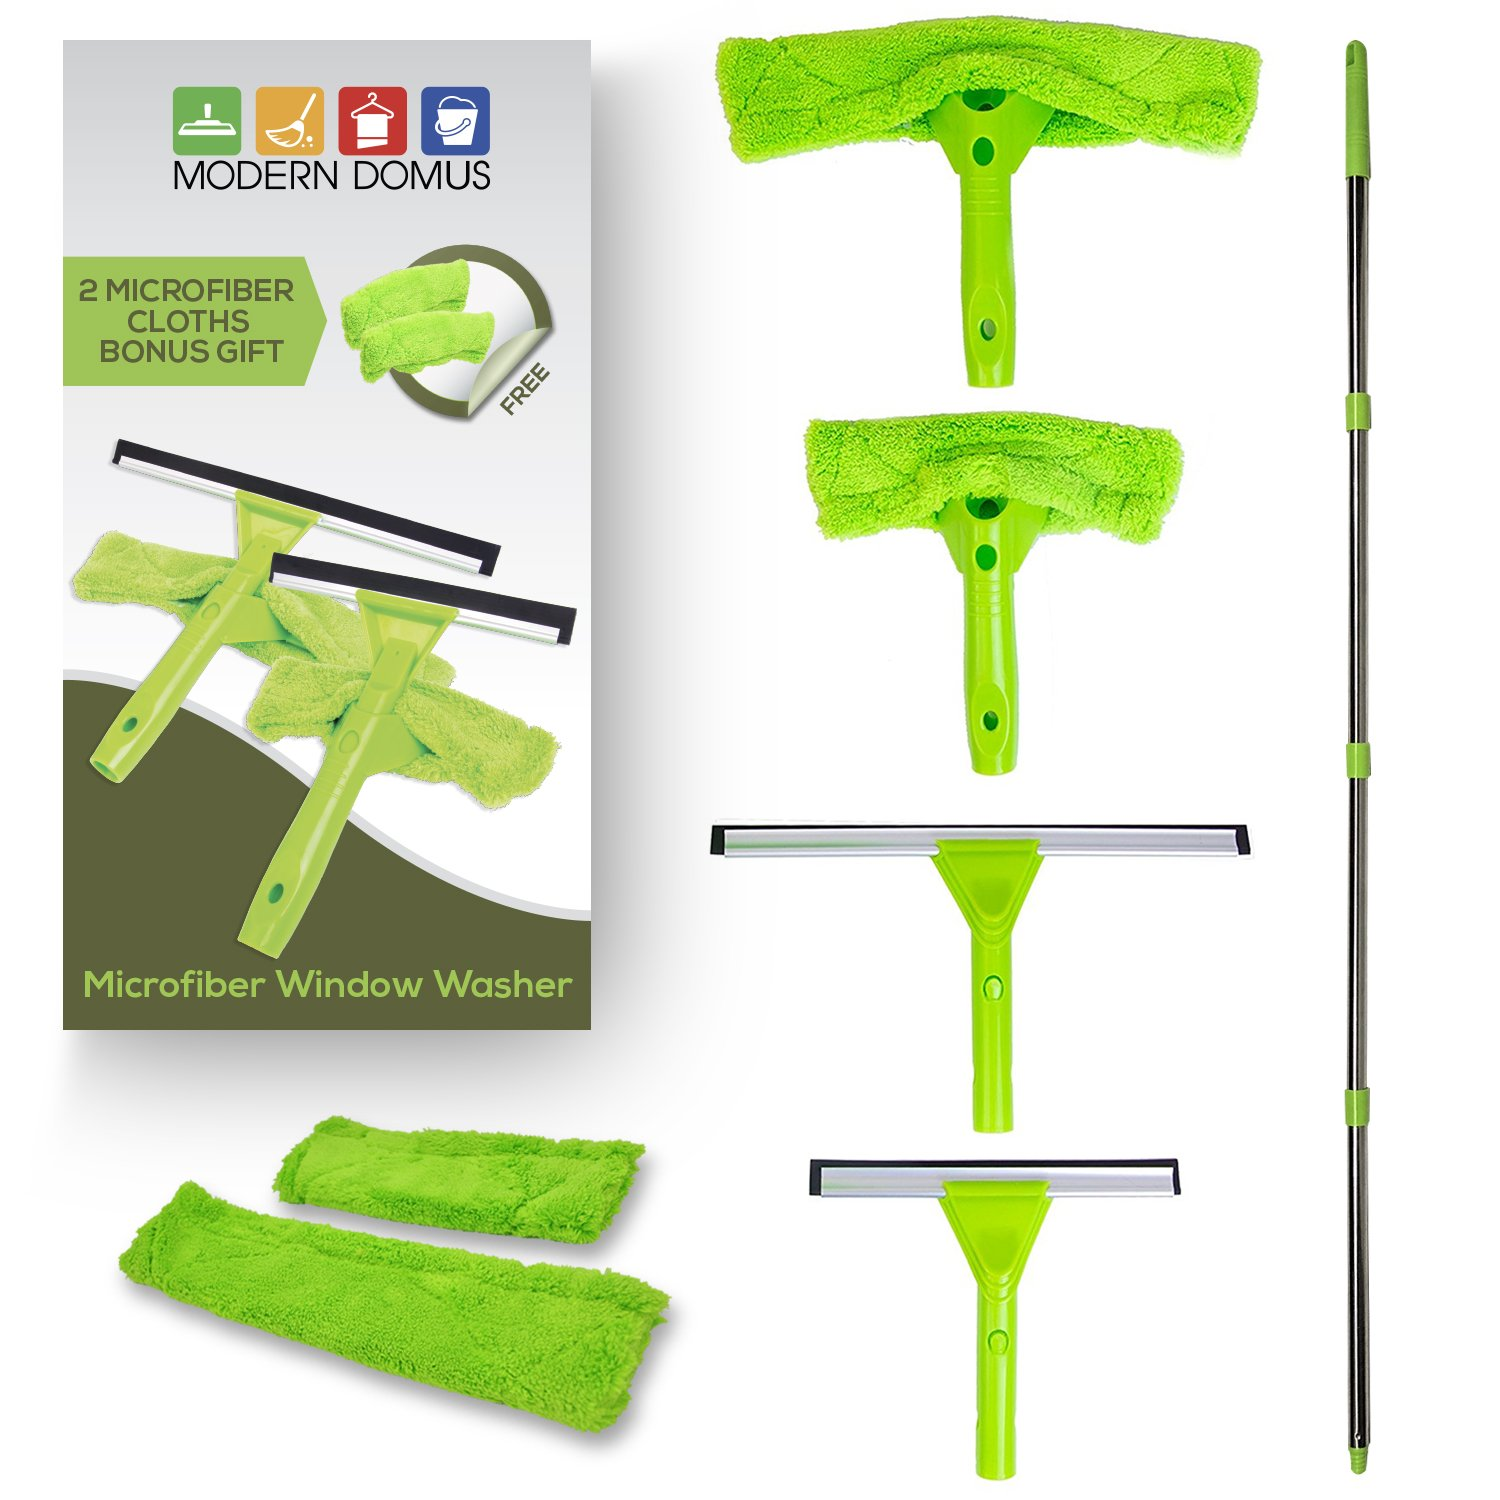 NeverEnding Reach Squeegee Window Cleaner Kit | Shower Squeegee, High Window Cleaning Tools, Car Windshield Tool and Doors - Indoor / Outdoor Washing Equipment with Extension Pole and 4 Washer Heads